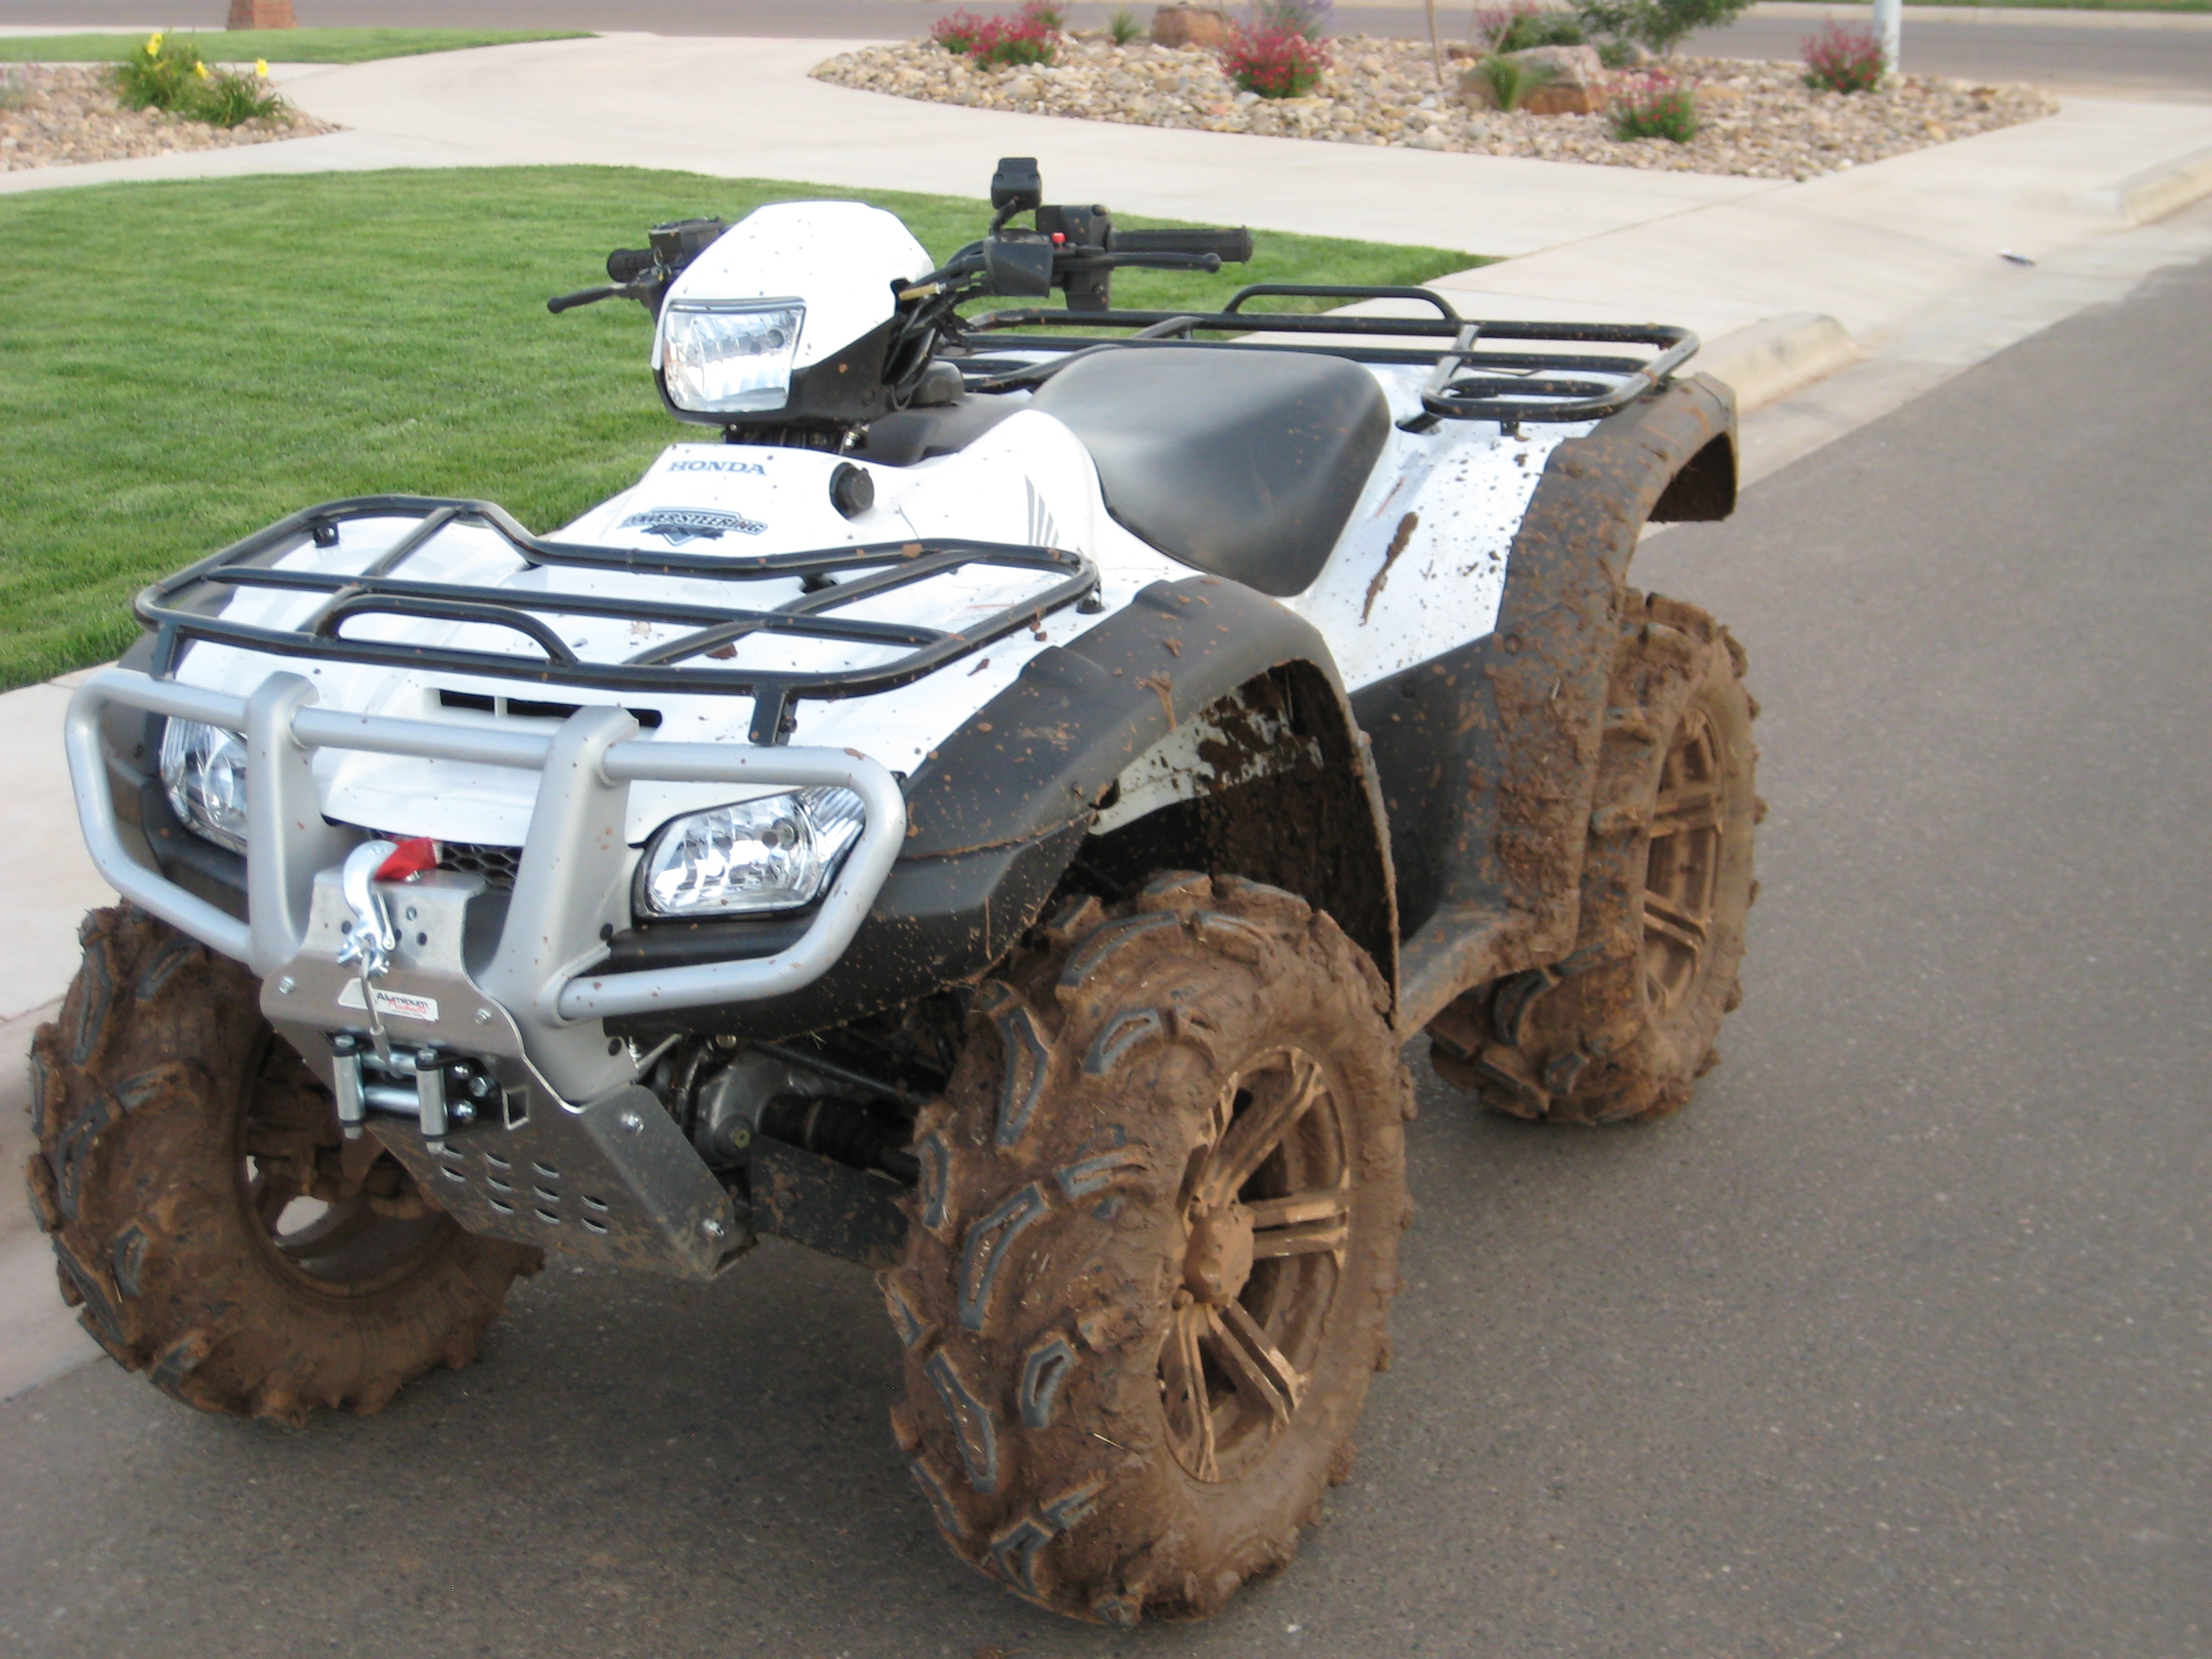 Let see your foreman 500'S - Page 45 - Honda Foreman Forums ...